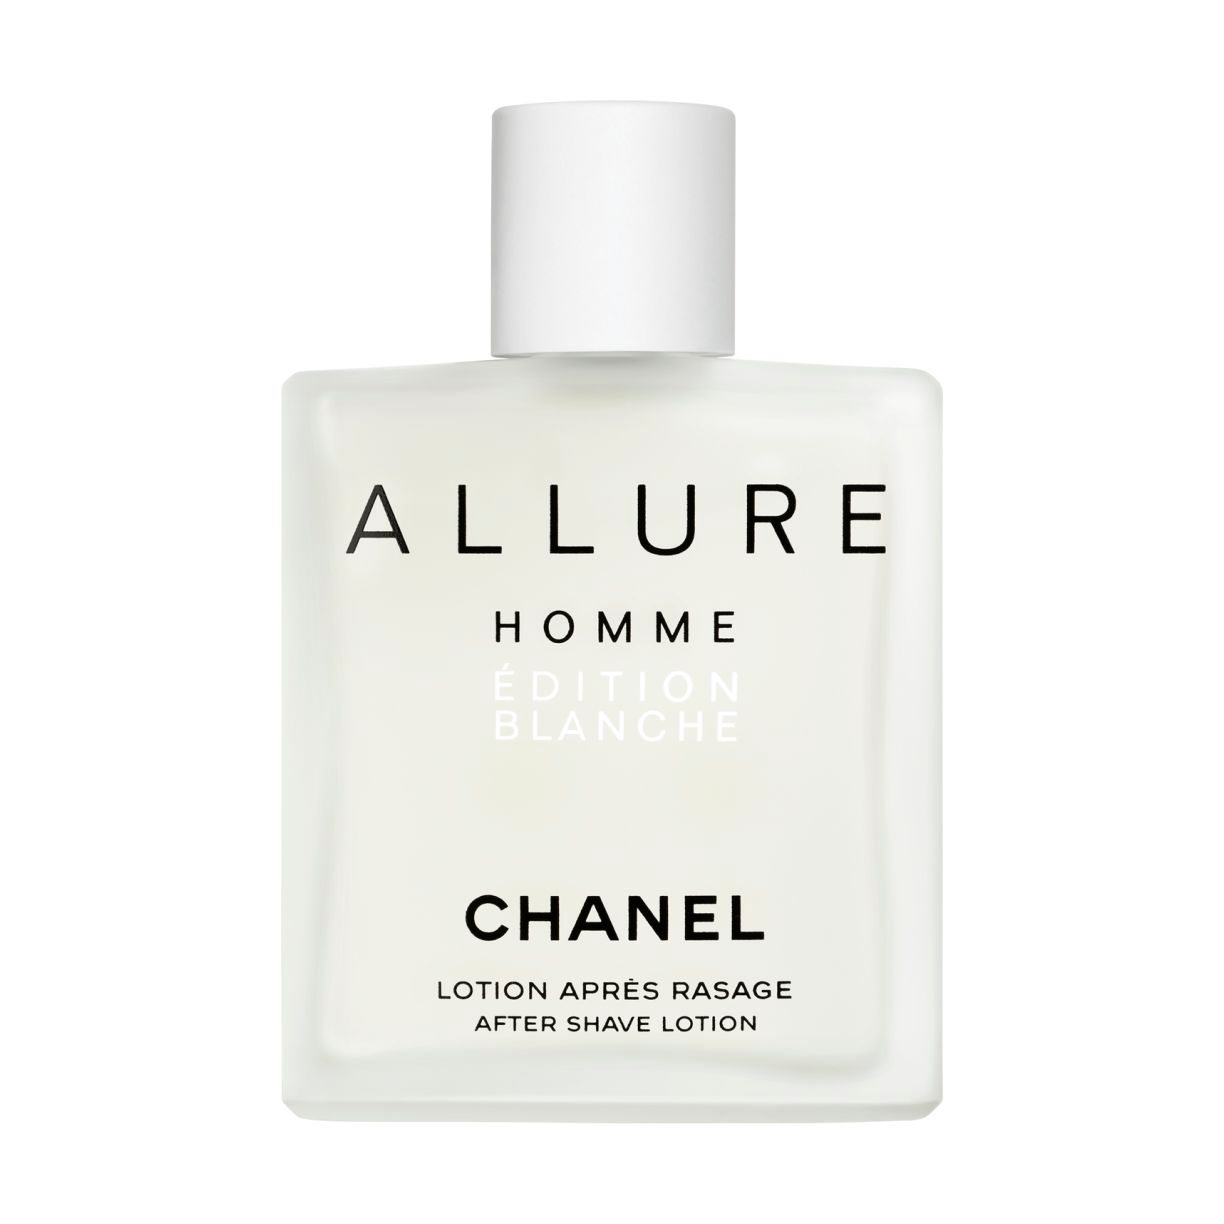 ALLURE HOMME ÉDITION BLANCHE AFTER SHAVE LOTION - โลชั่นหลังการโกนหนวด 100ml